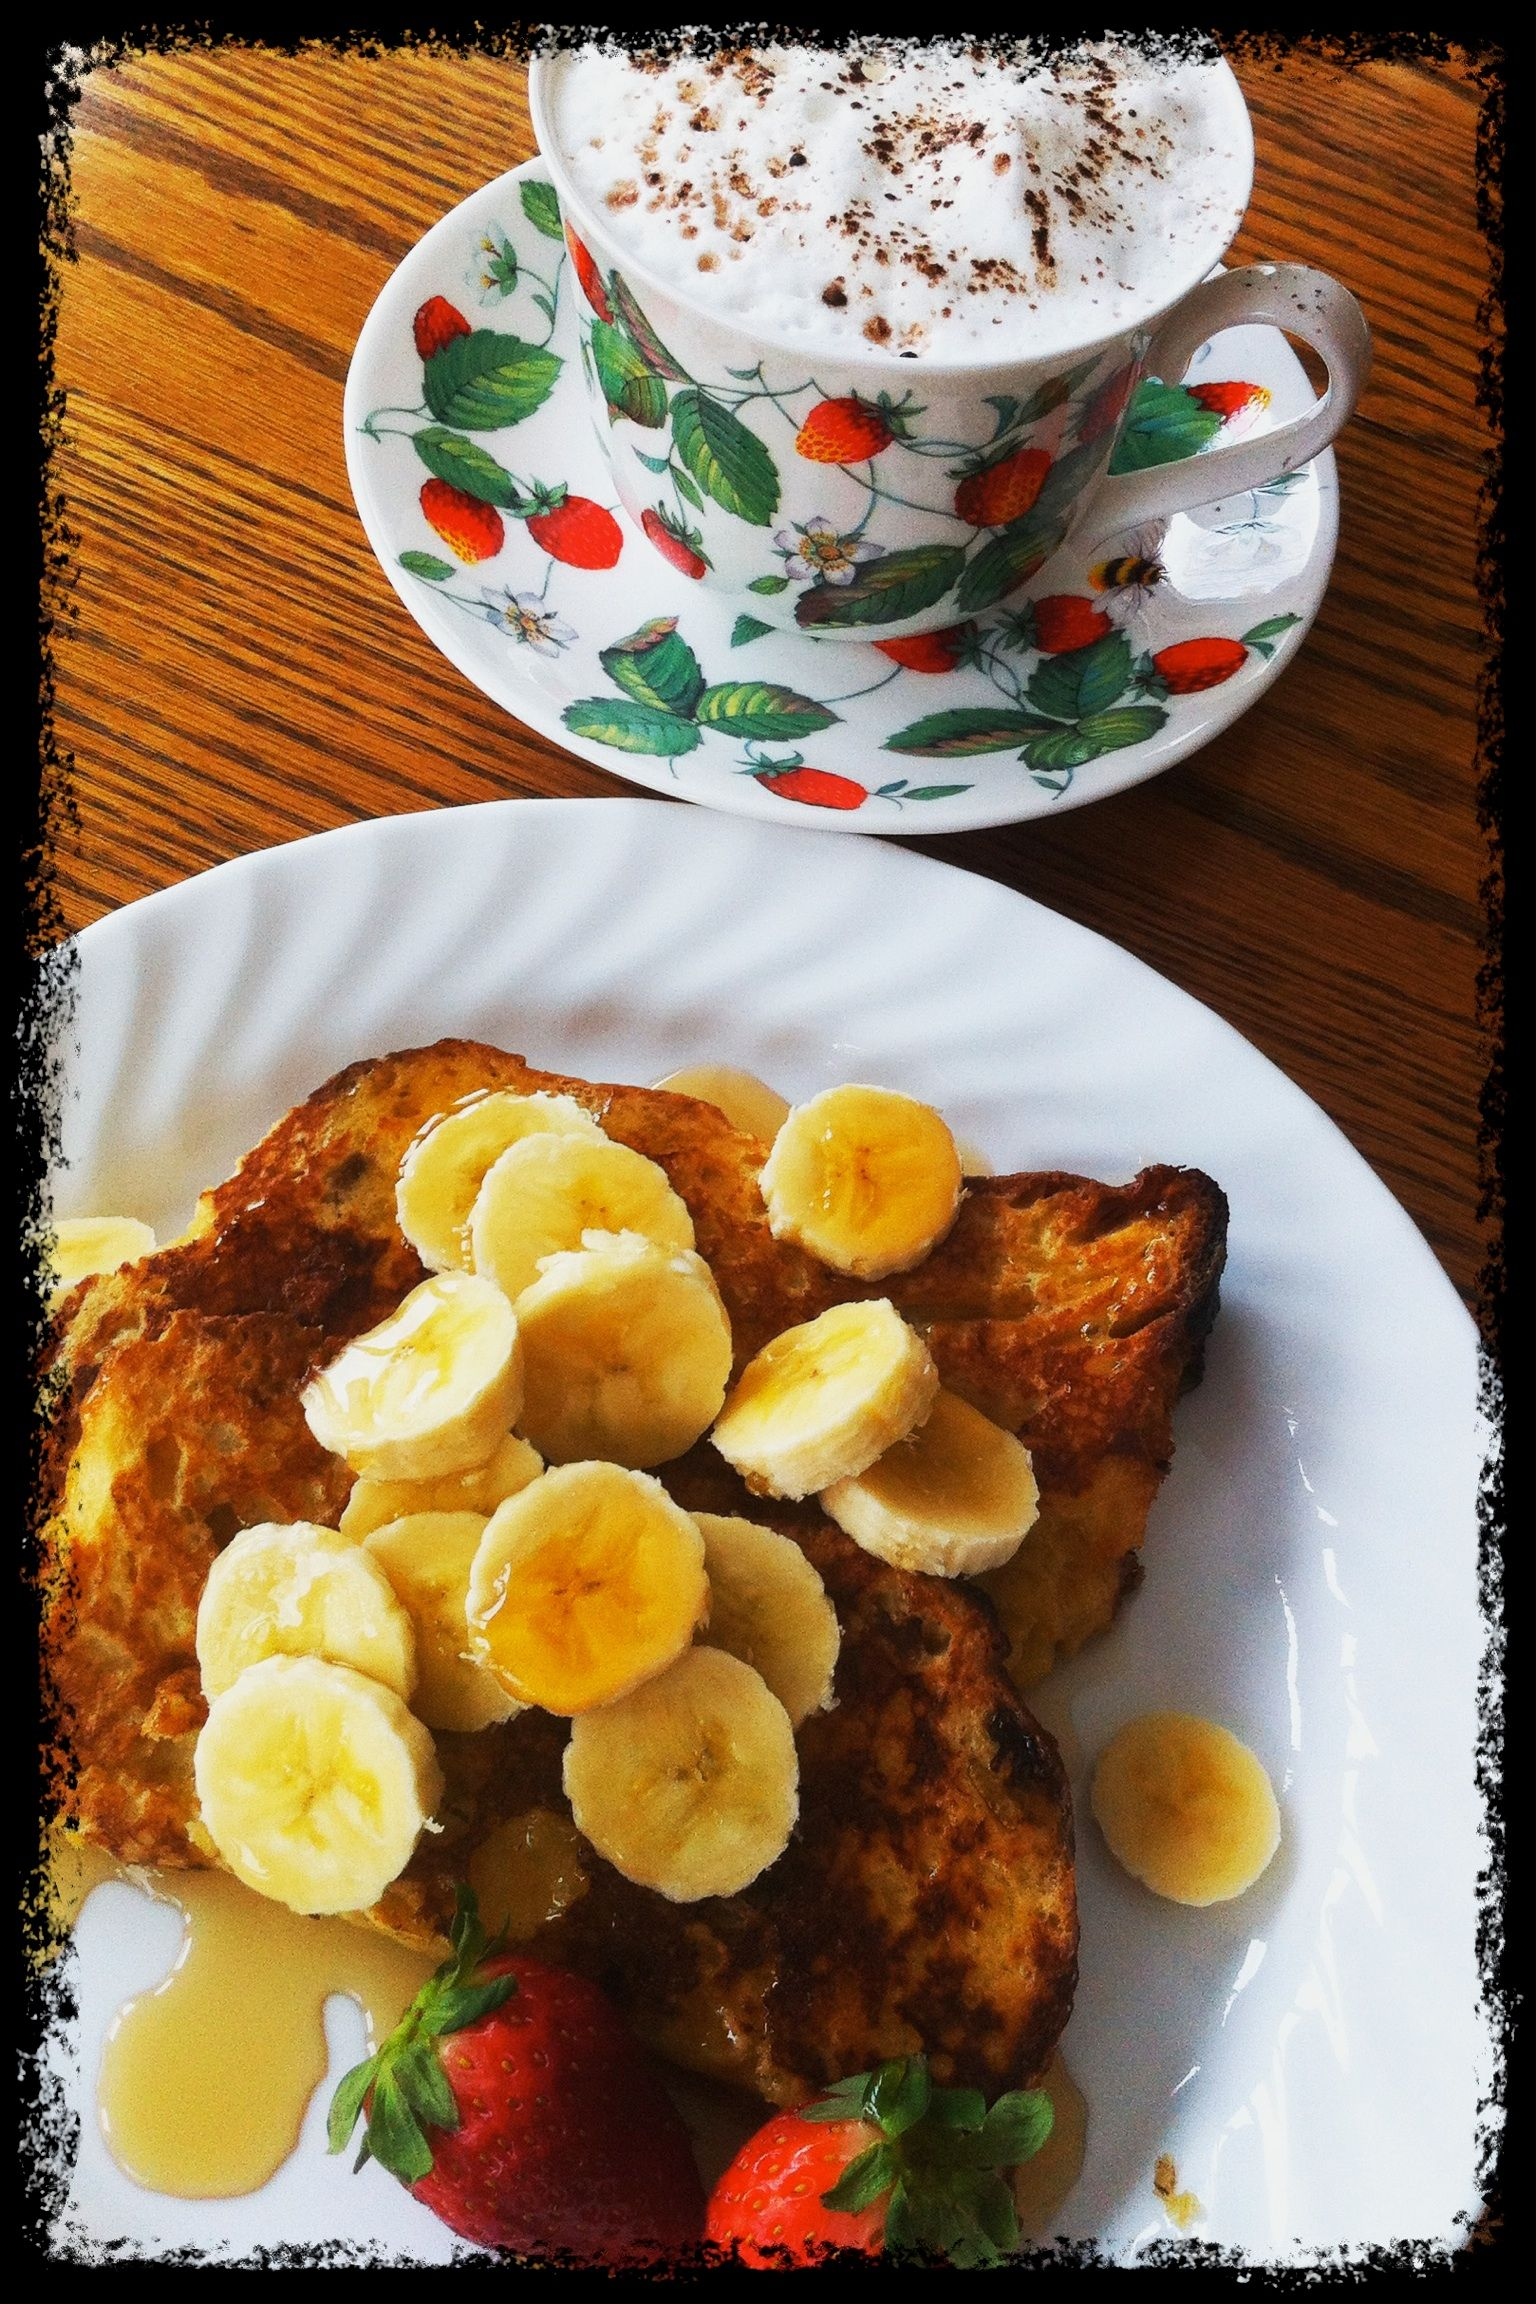 Italian French toast with Canadian maple syrup